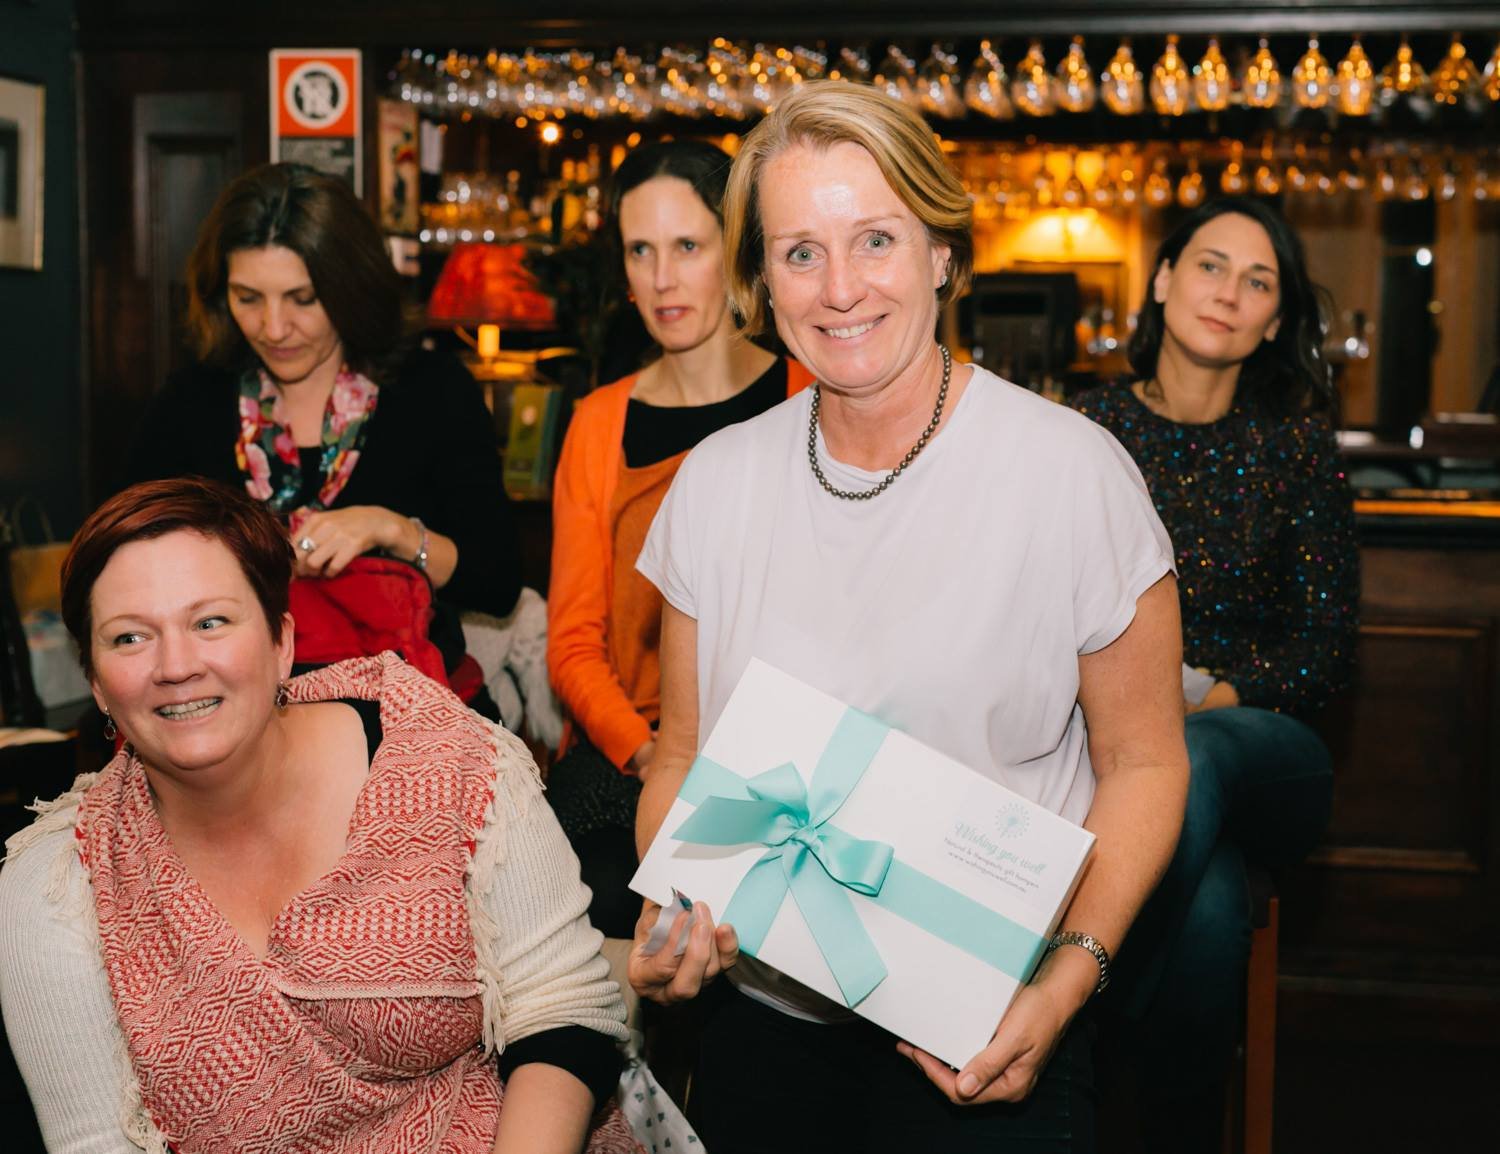 Congratulations to Fiona, from Mary's House, winner of the gorgeous pamper box courtesy of Wishing you well, where you will find a curated selection of only the best natural and therapeutic products from brands you can trust. Choose from a range of ready made gift boxes or hand select individual items to create your own.